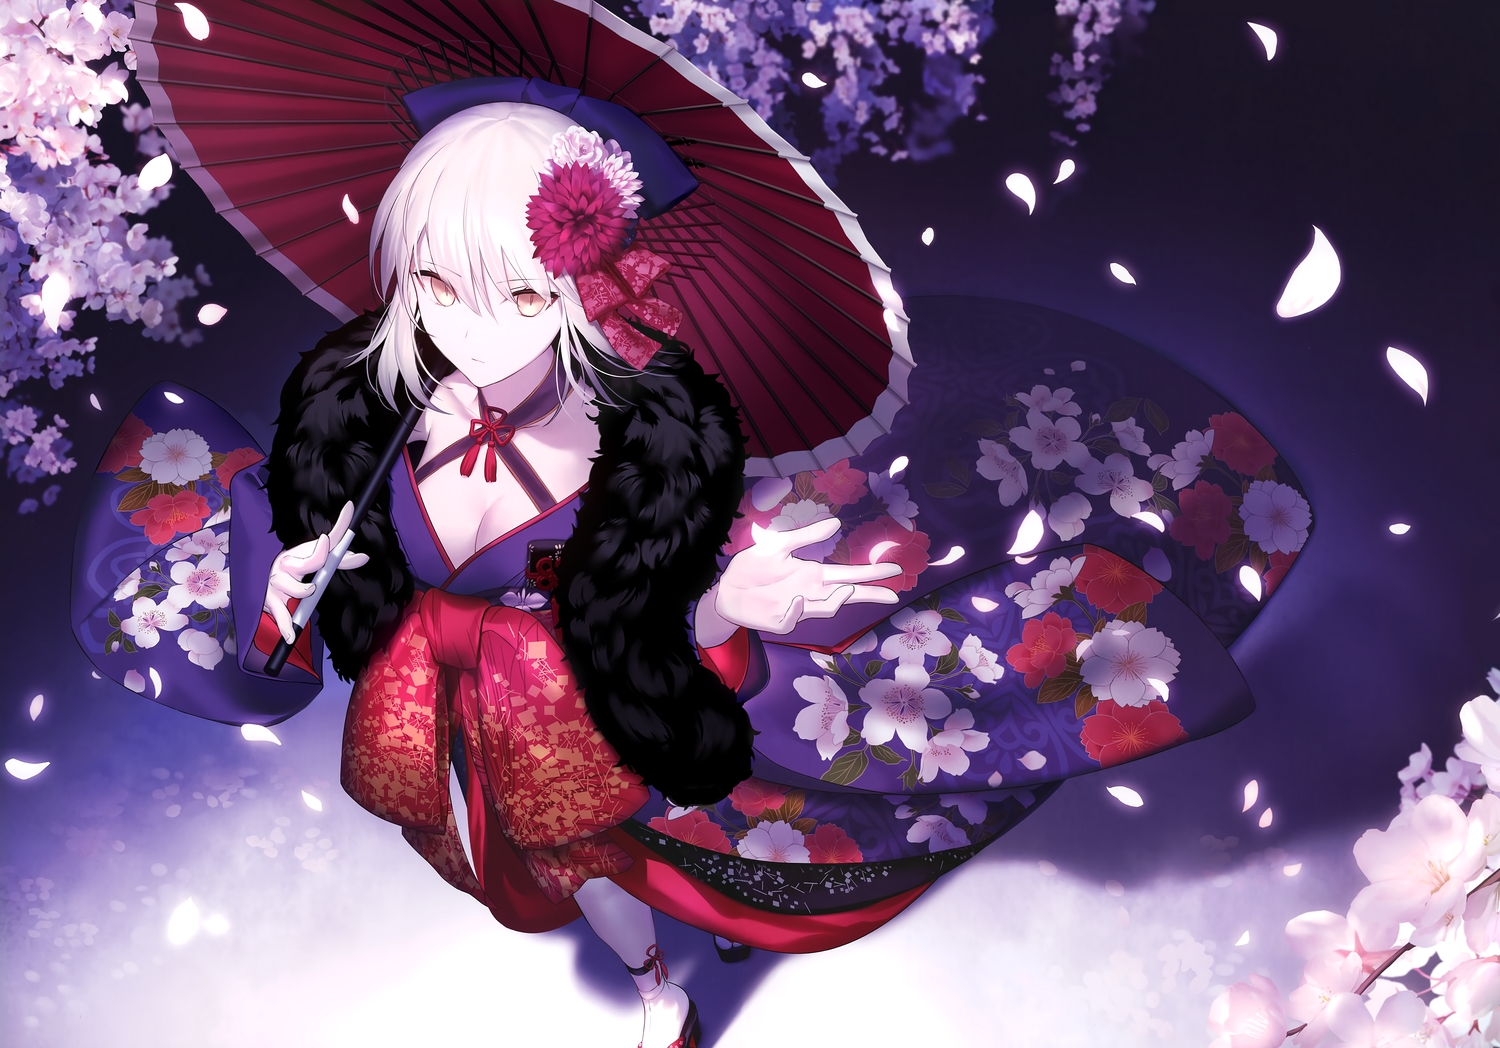 artoria_pendragon_(all) breasts cleavage fate/grand_order fate_(series) fate/stay_night flowers japanese_clothes kimono saber saber_alter scan shinooji umbrella